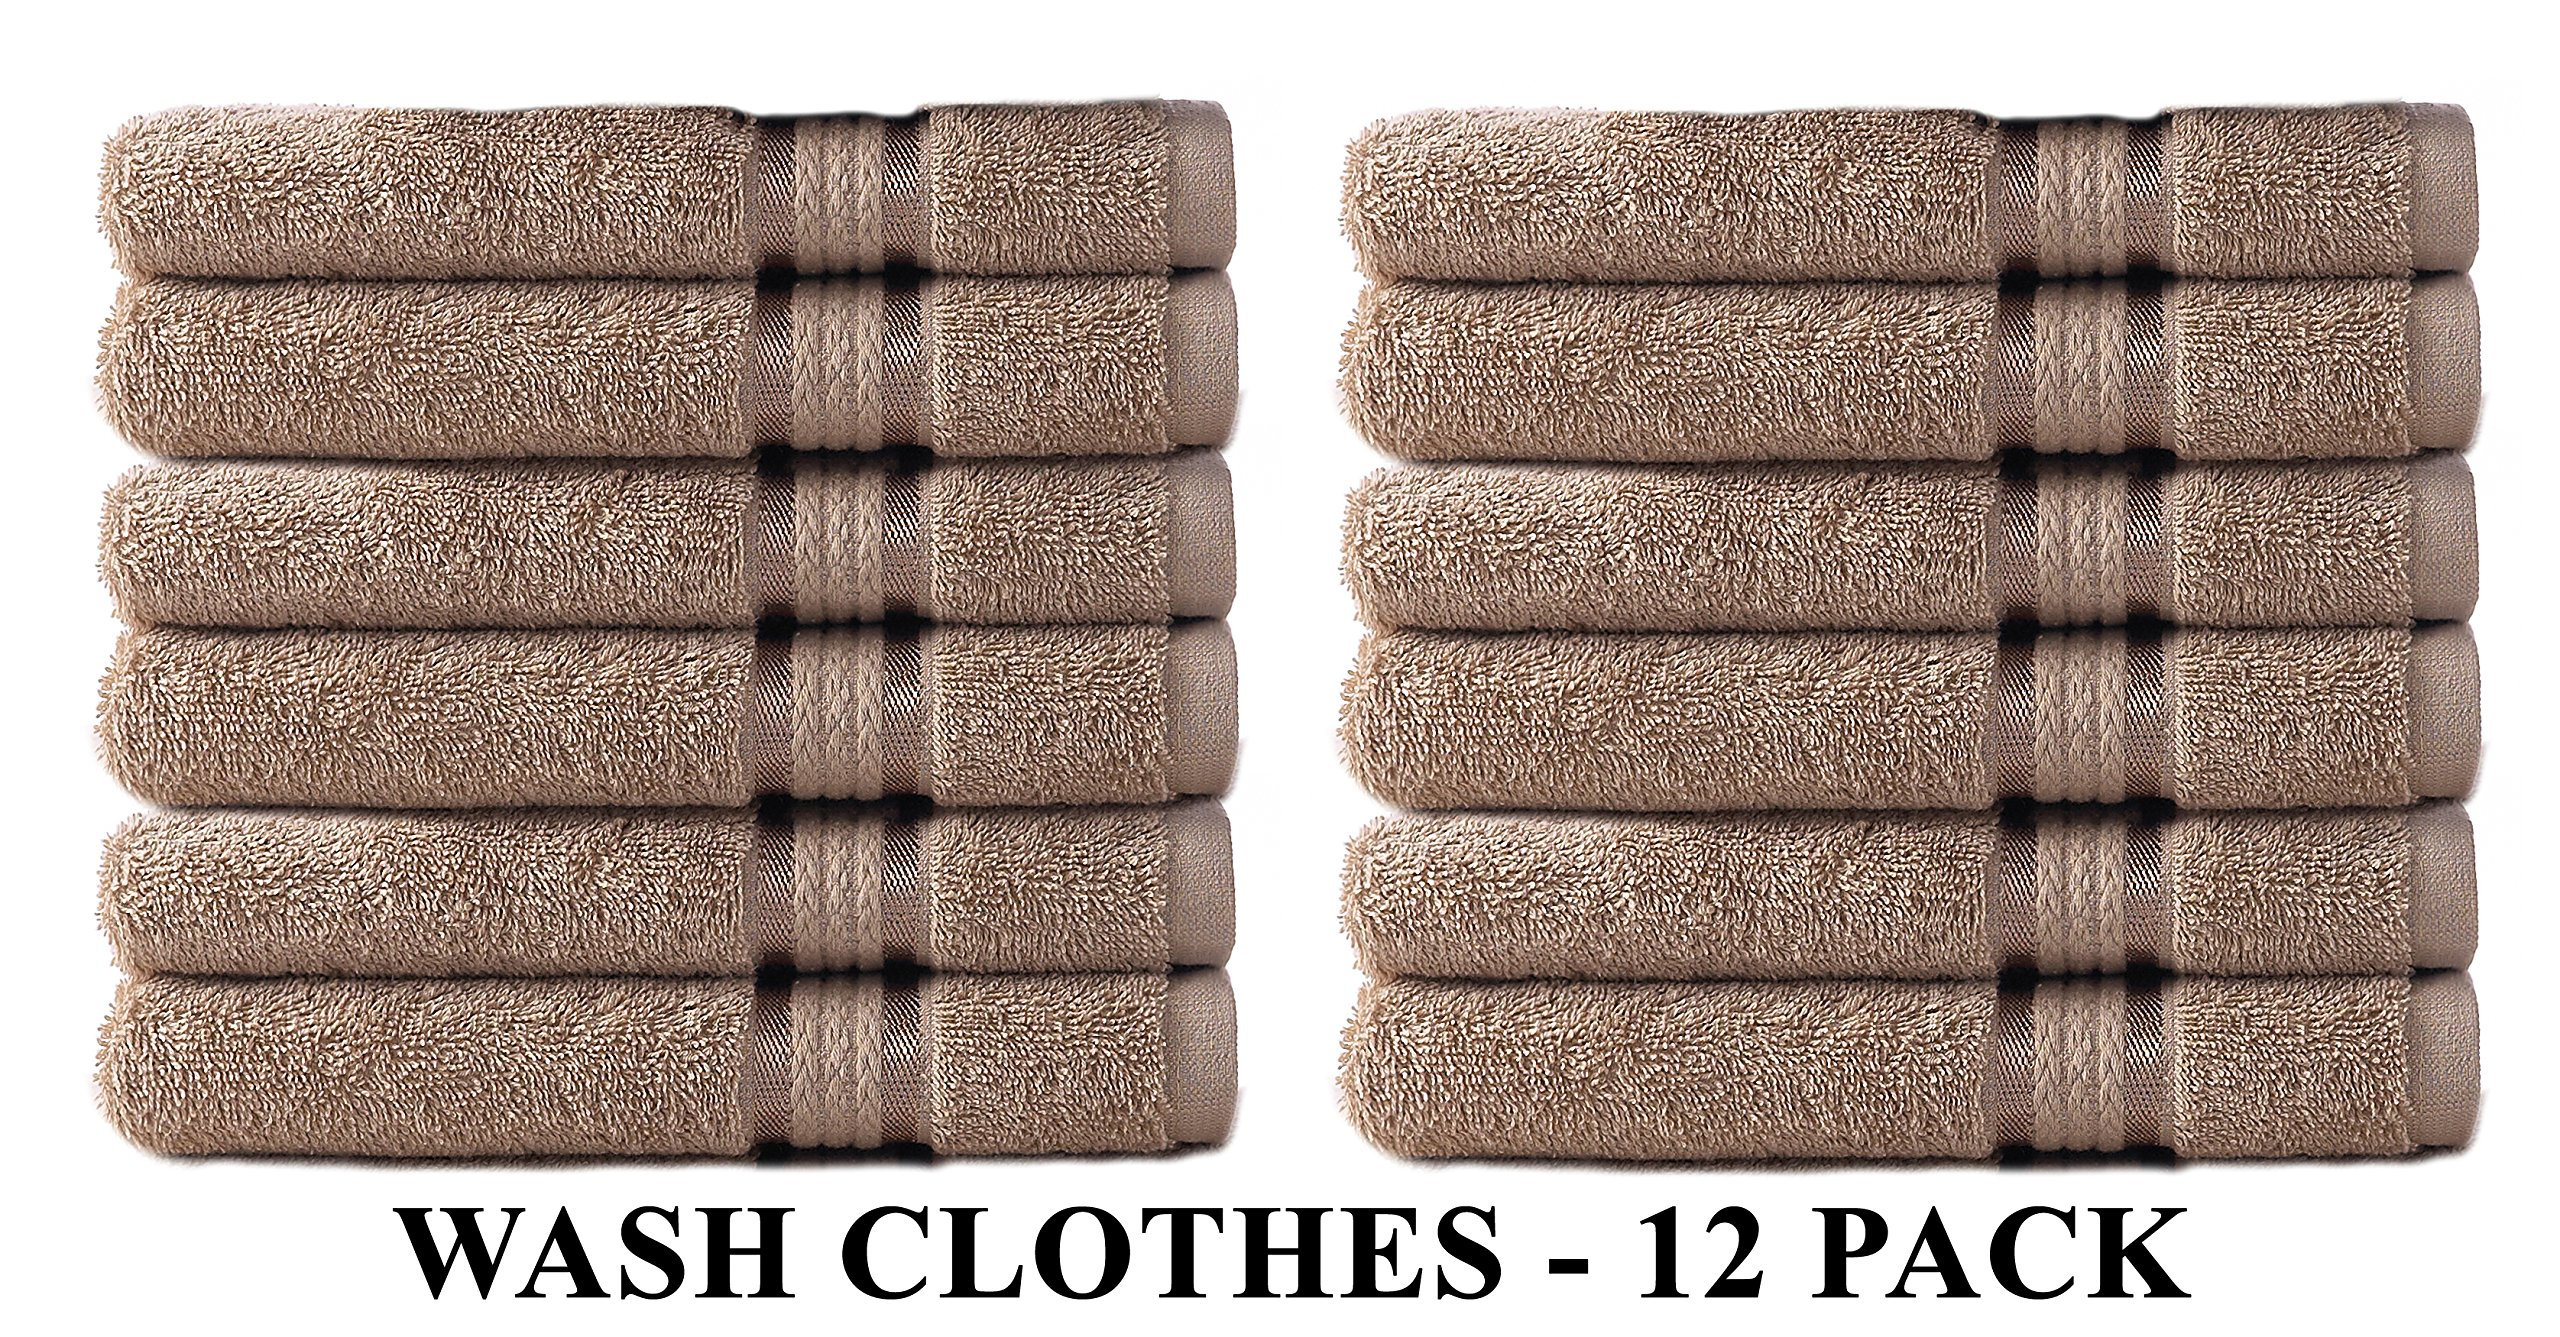 Cotton Craft Ultra Soft 12 Pack Wash Cloths 12x12 Linen weighs 2 Ounces each - 100% Pure Ringspun Cotton - Luxurious Rayon trim - Ideal for everyday use - Easy care machine wash